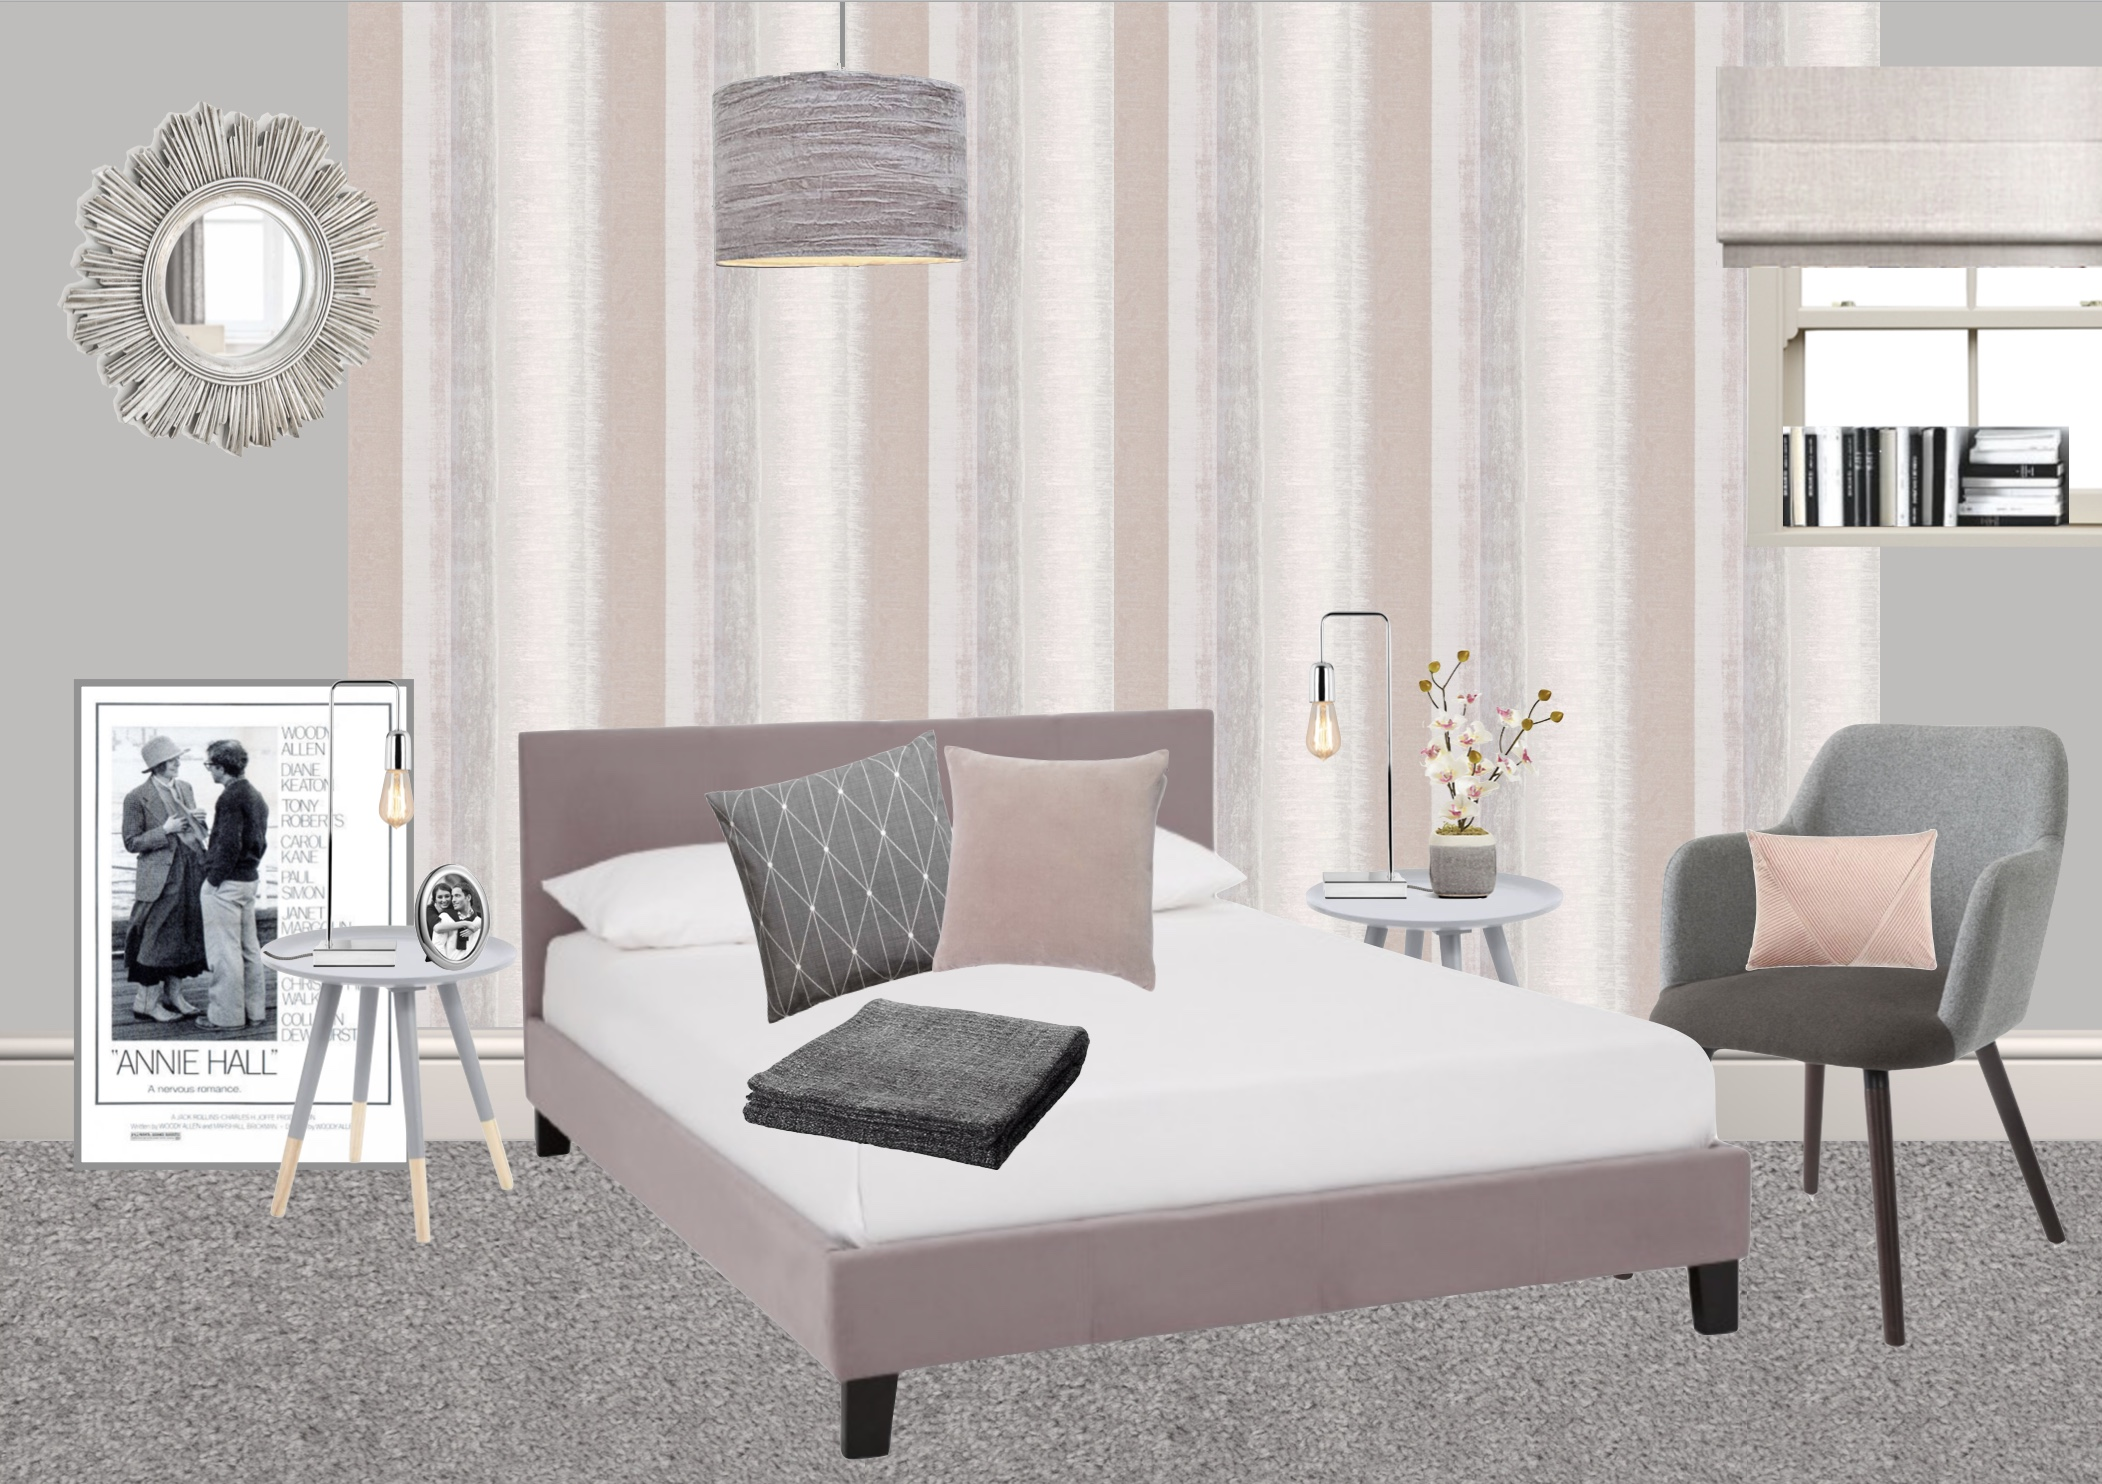 Moodboard for second bedroom in show home designed by Amelia Wilson pink and grey bedroom